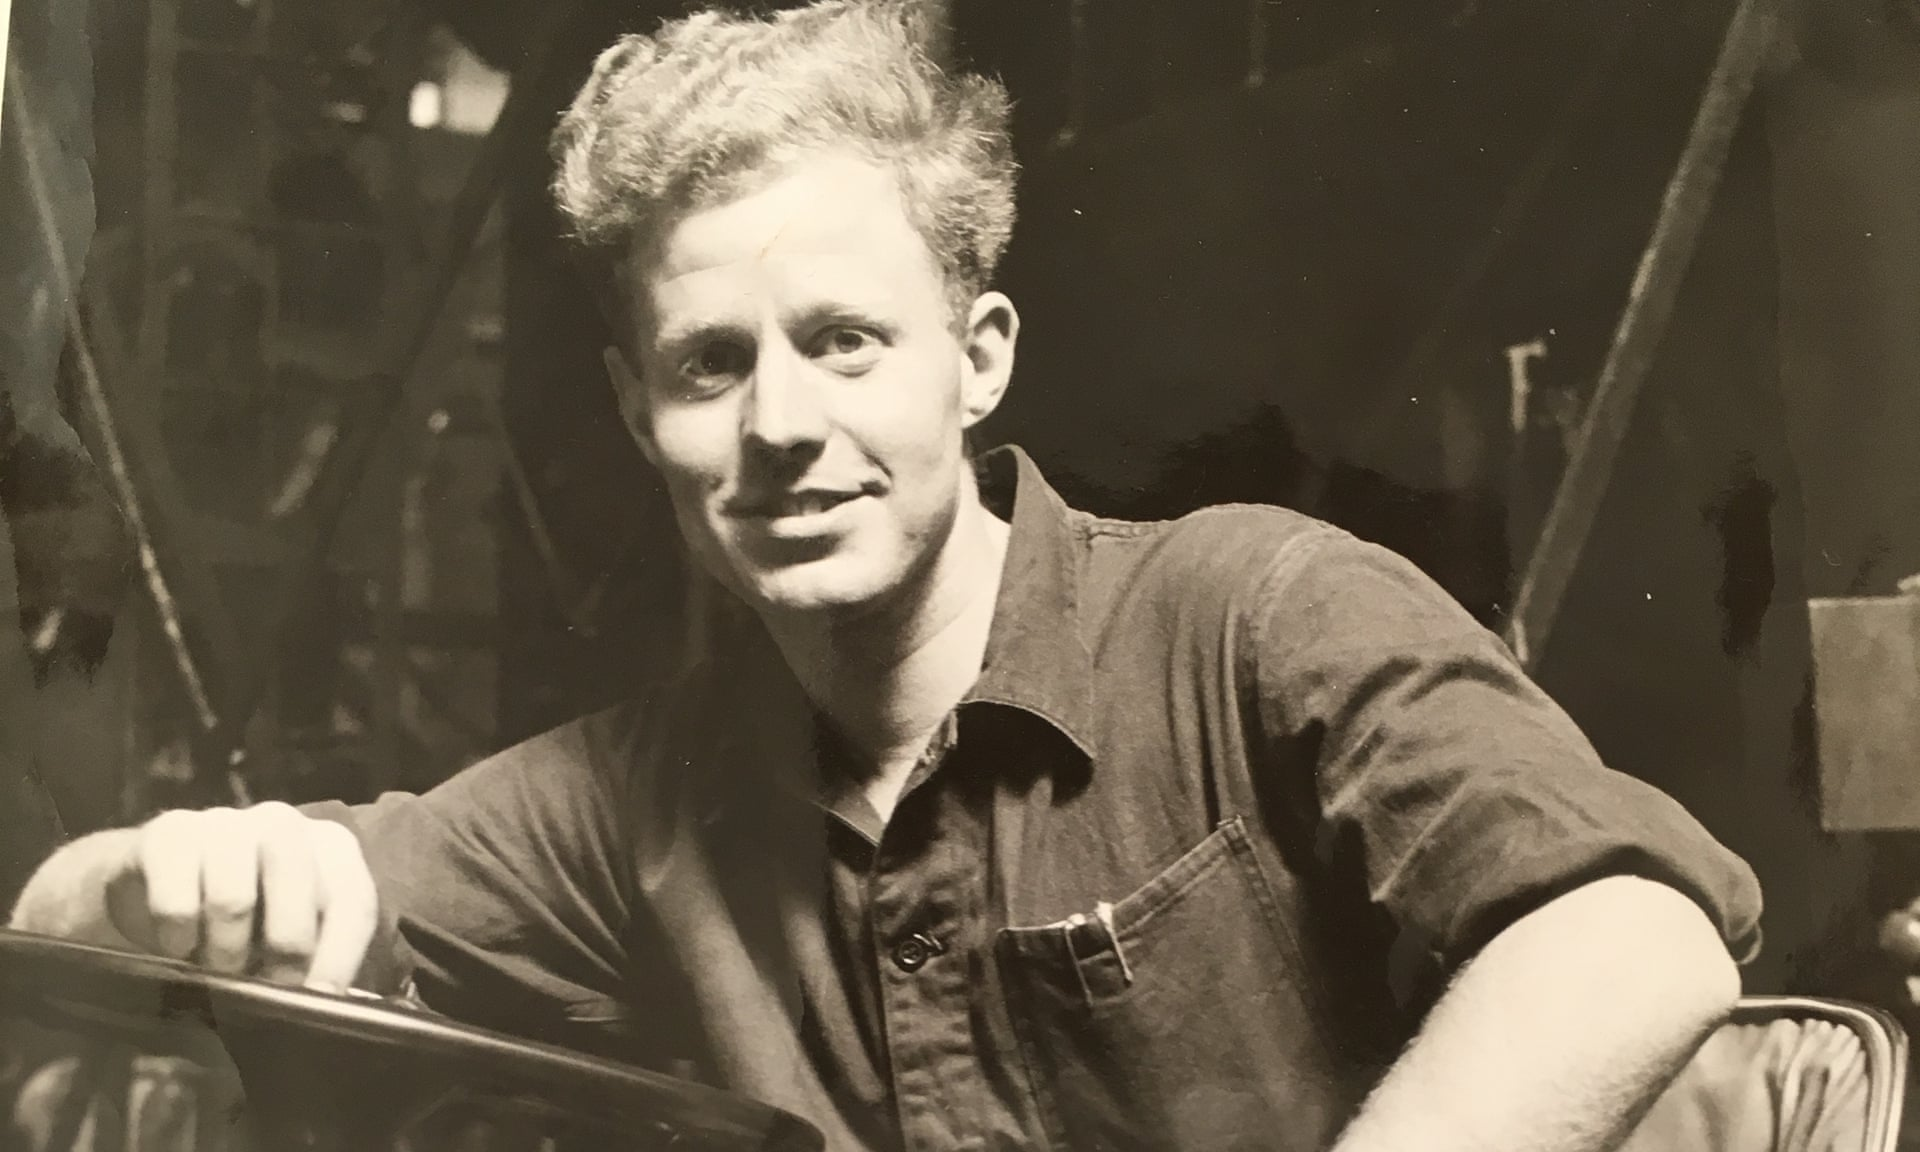 The Rev Tony Williamson in 1960, at work in the Pressed Steel car factory, Cowley, Oxford. Photograph: Courtesy of Oxford Mail